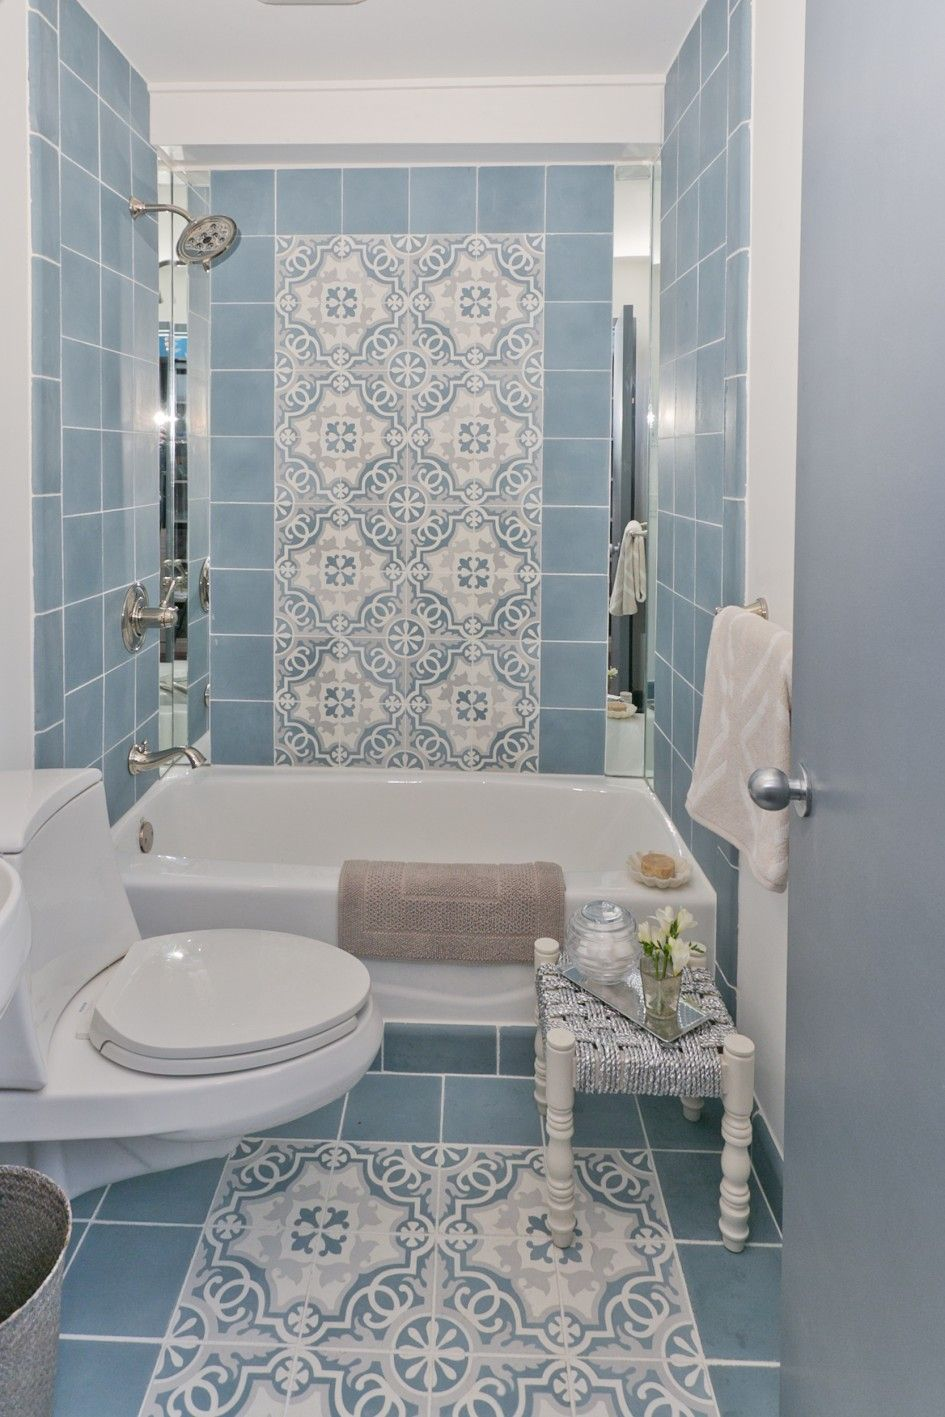 Modern vintage bathroom ideas - Beautifulminimalistbluetilepatternbathroomdecoralso Beautifulminimalistbluetilepatternbathroomdecoralso 163 Best Images About Small Bathroom